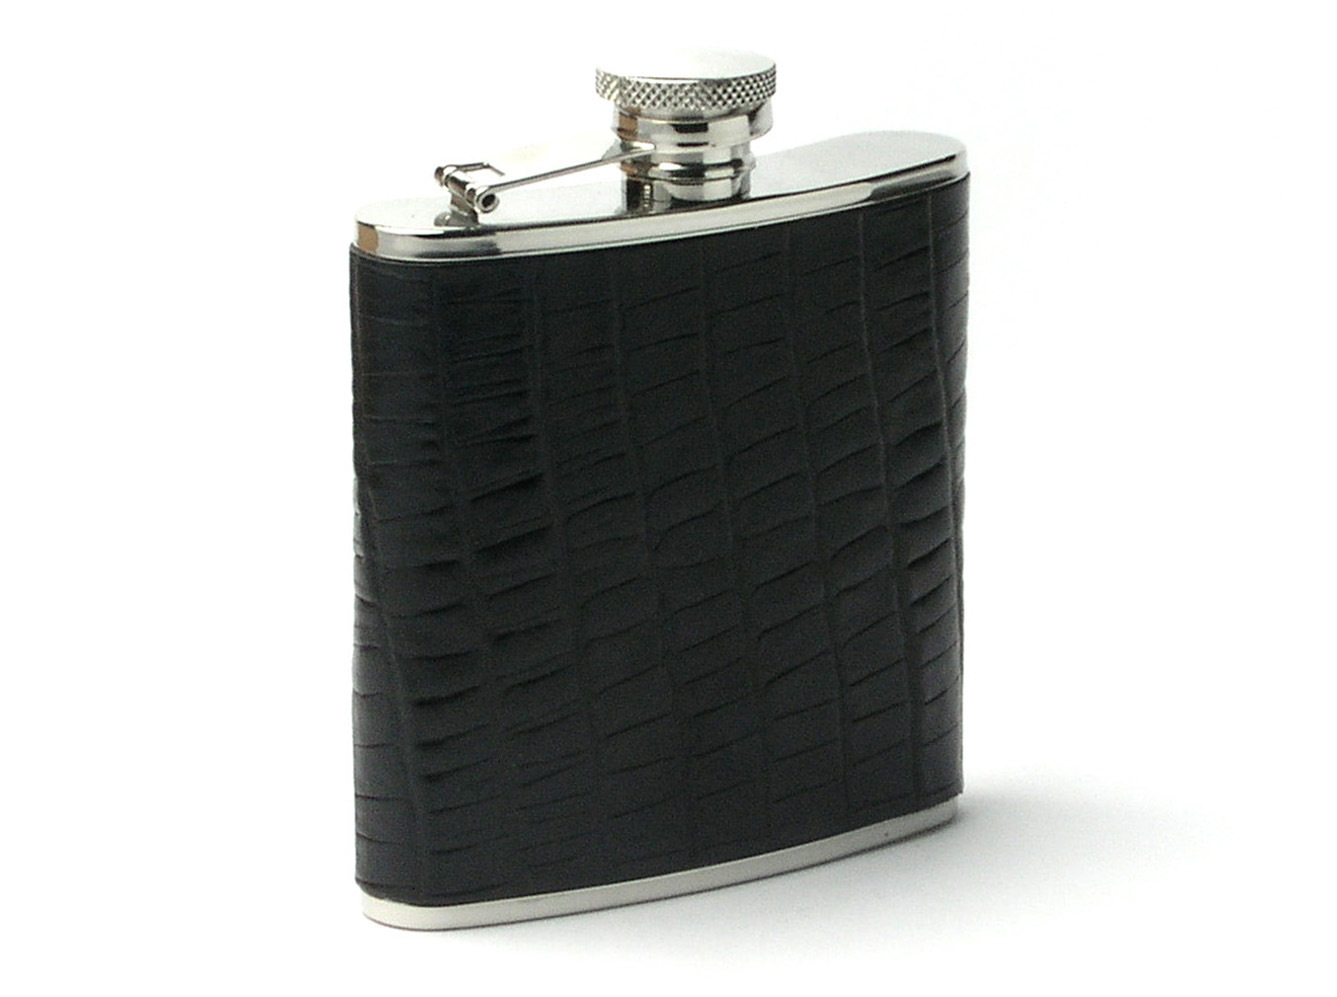 Stainless Steel Leather Hip Flask with Stainless Steel Funnel and Cup Set